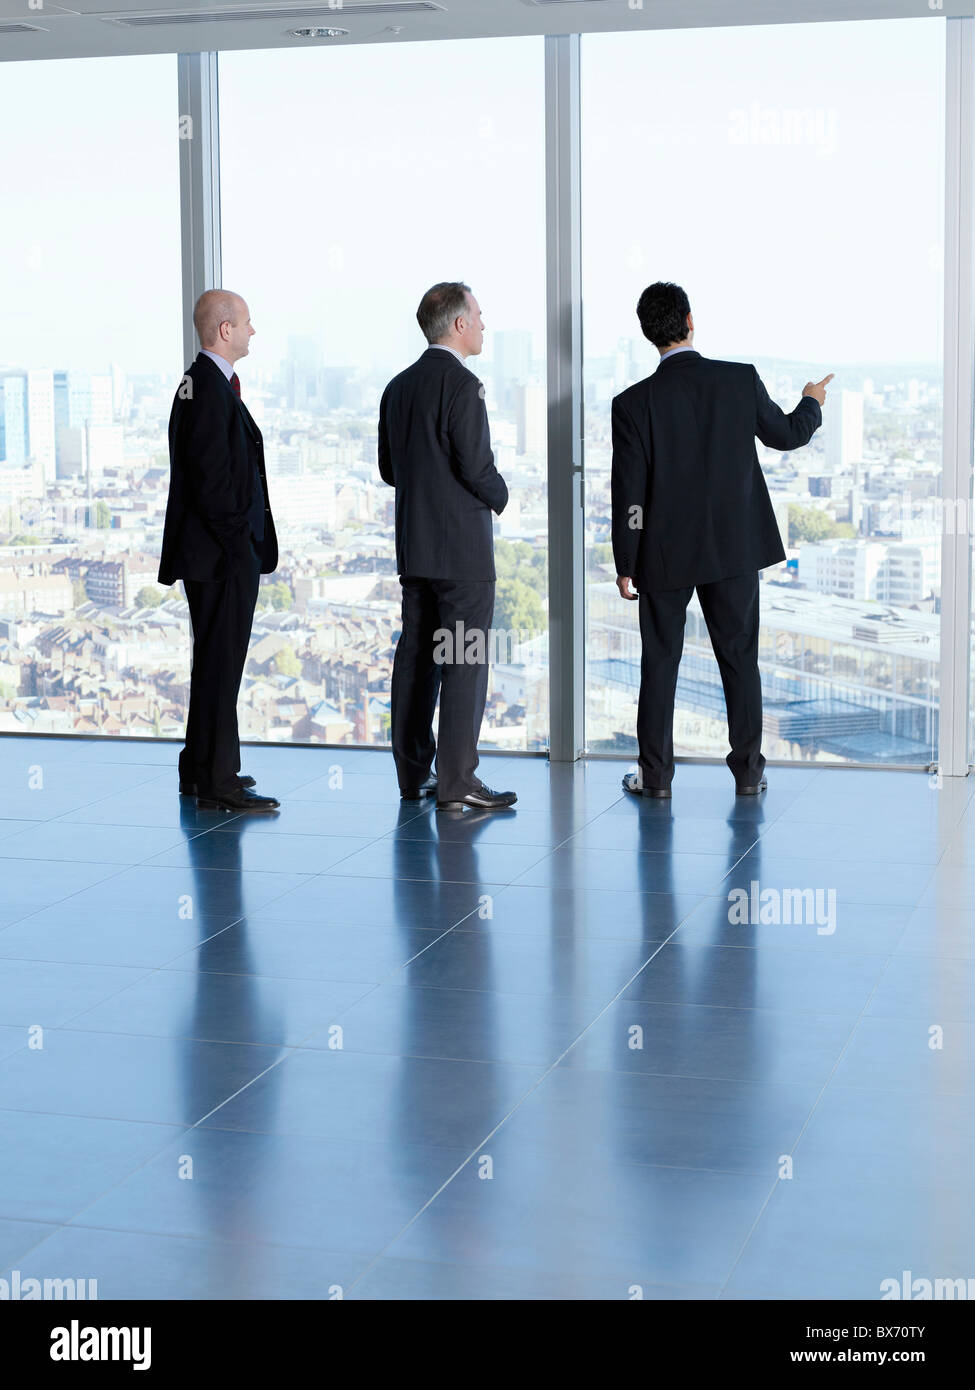 Three executives looking at city landscape in empty office space - Stock Image